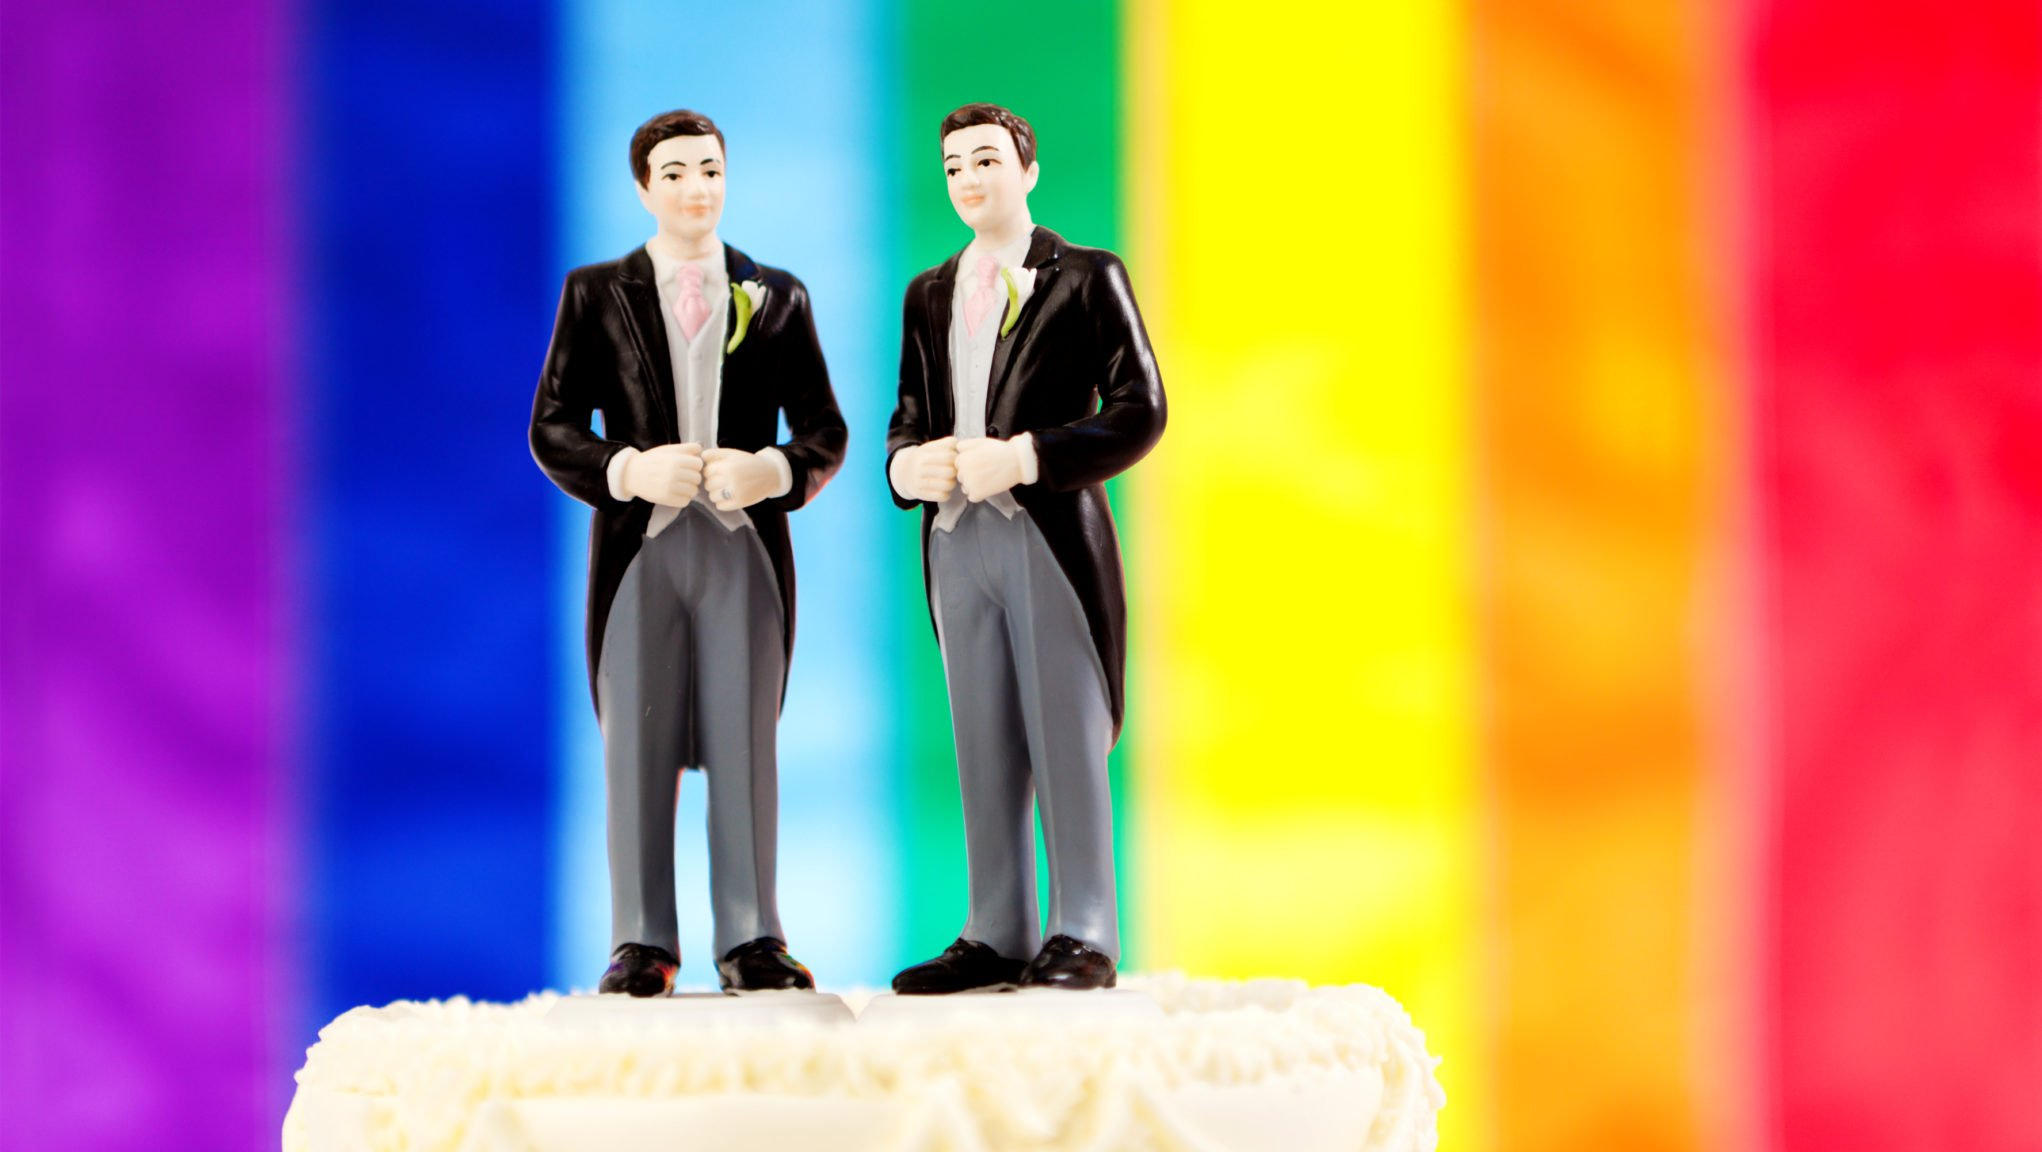 A wedding cake topper of two men in suits on a rainbow background, signifying marriage equality